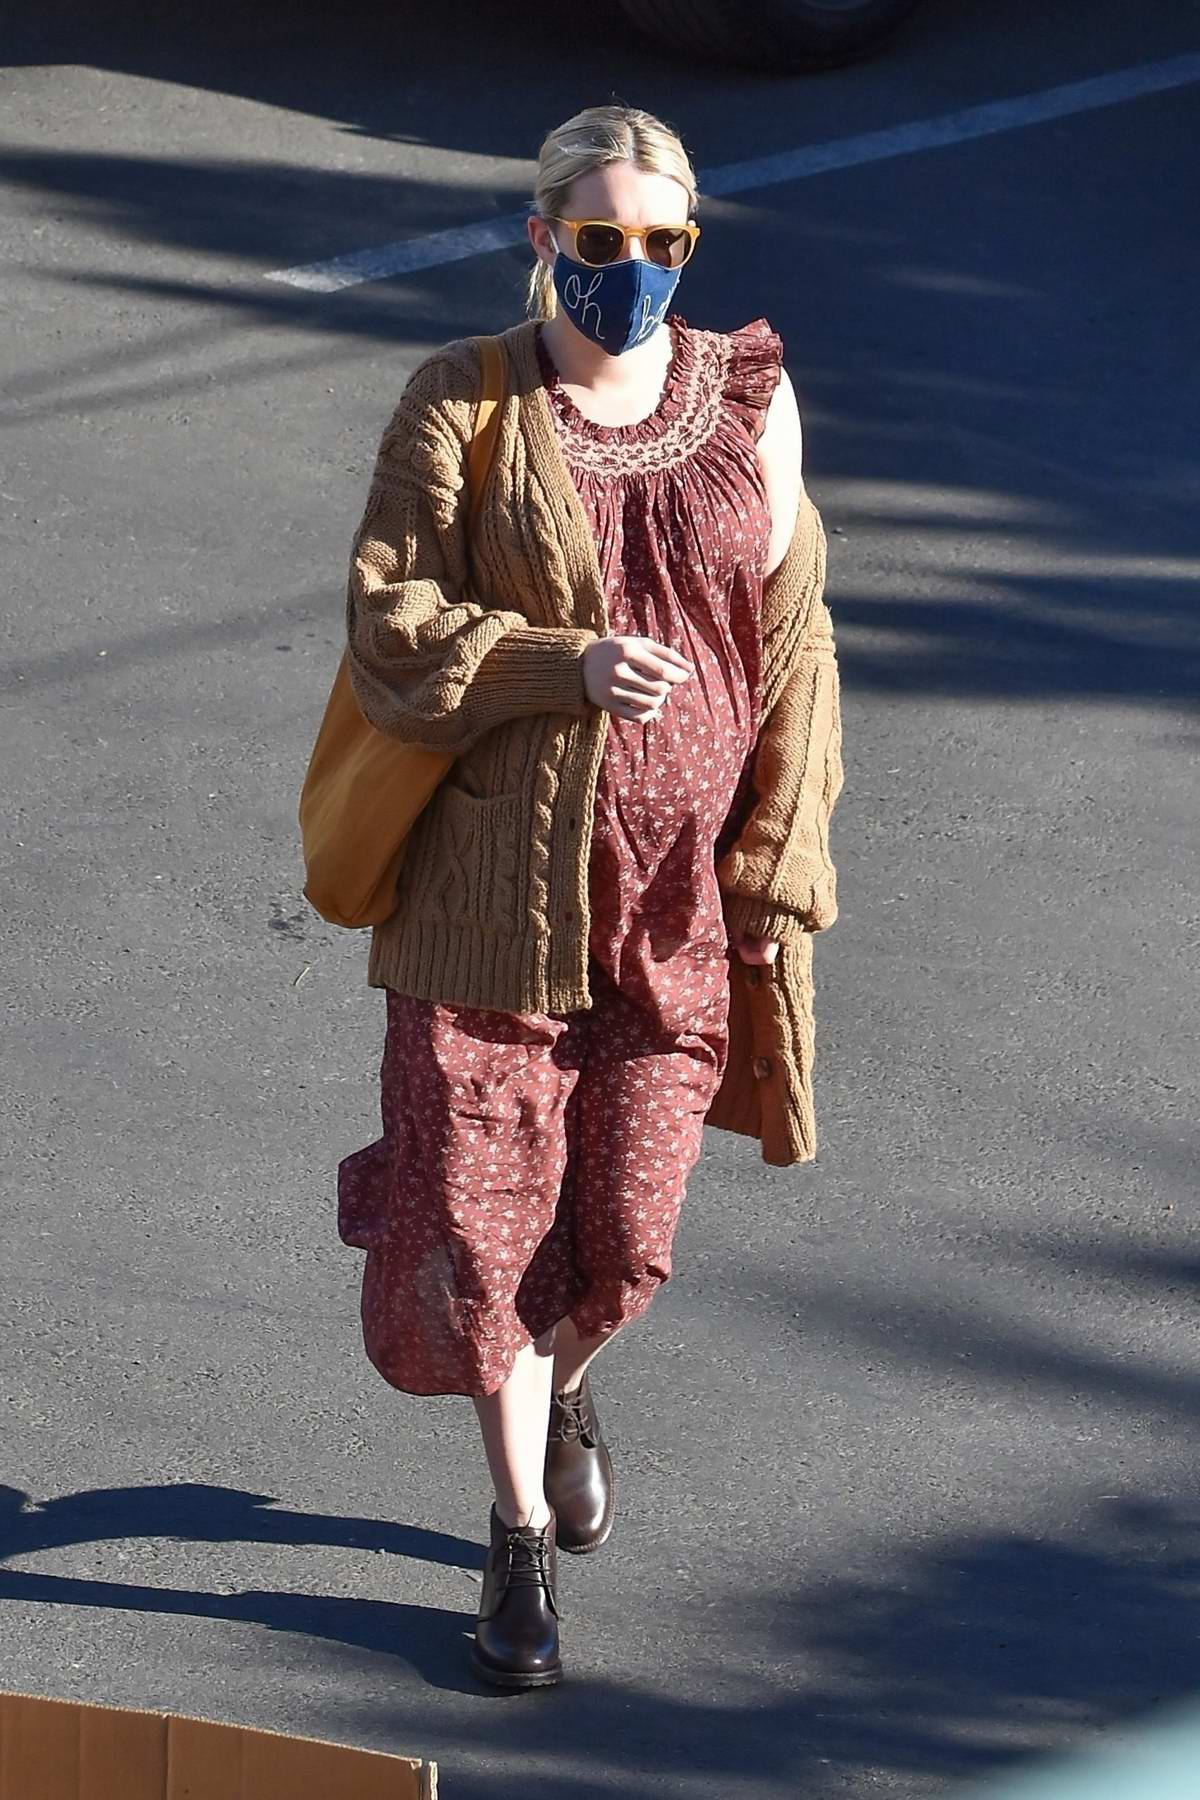 Emma Roberts dons a cute patterned dress with a brown cardigan on top while out running errands in Los Angeles